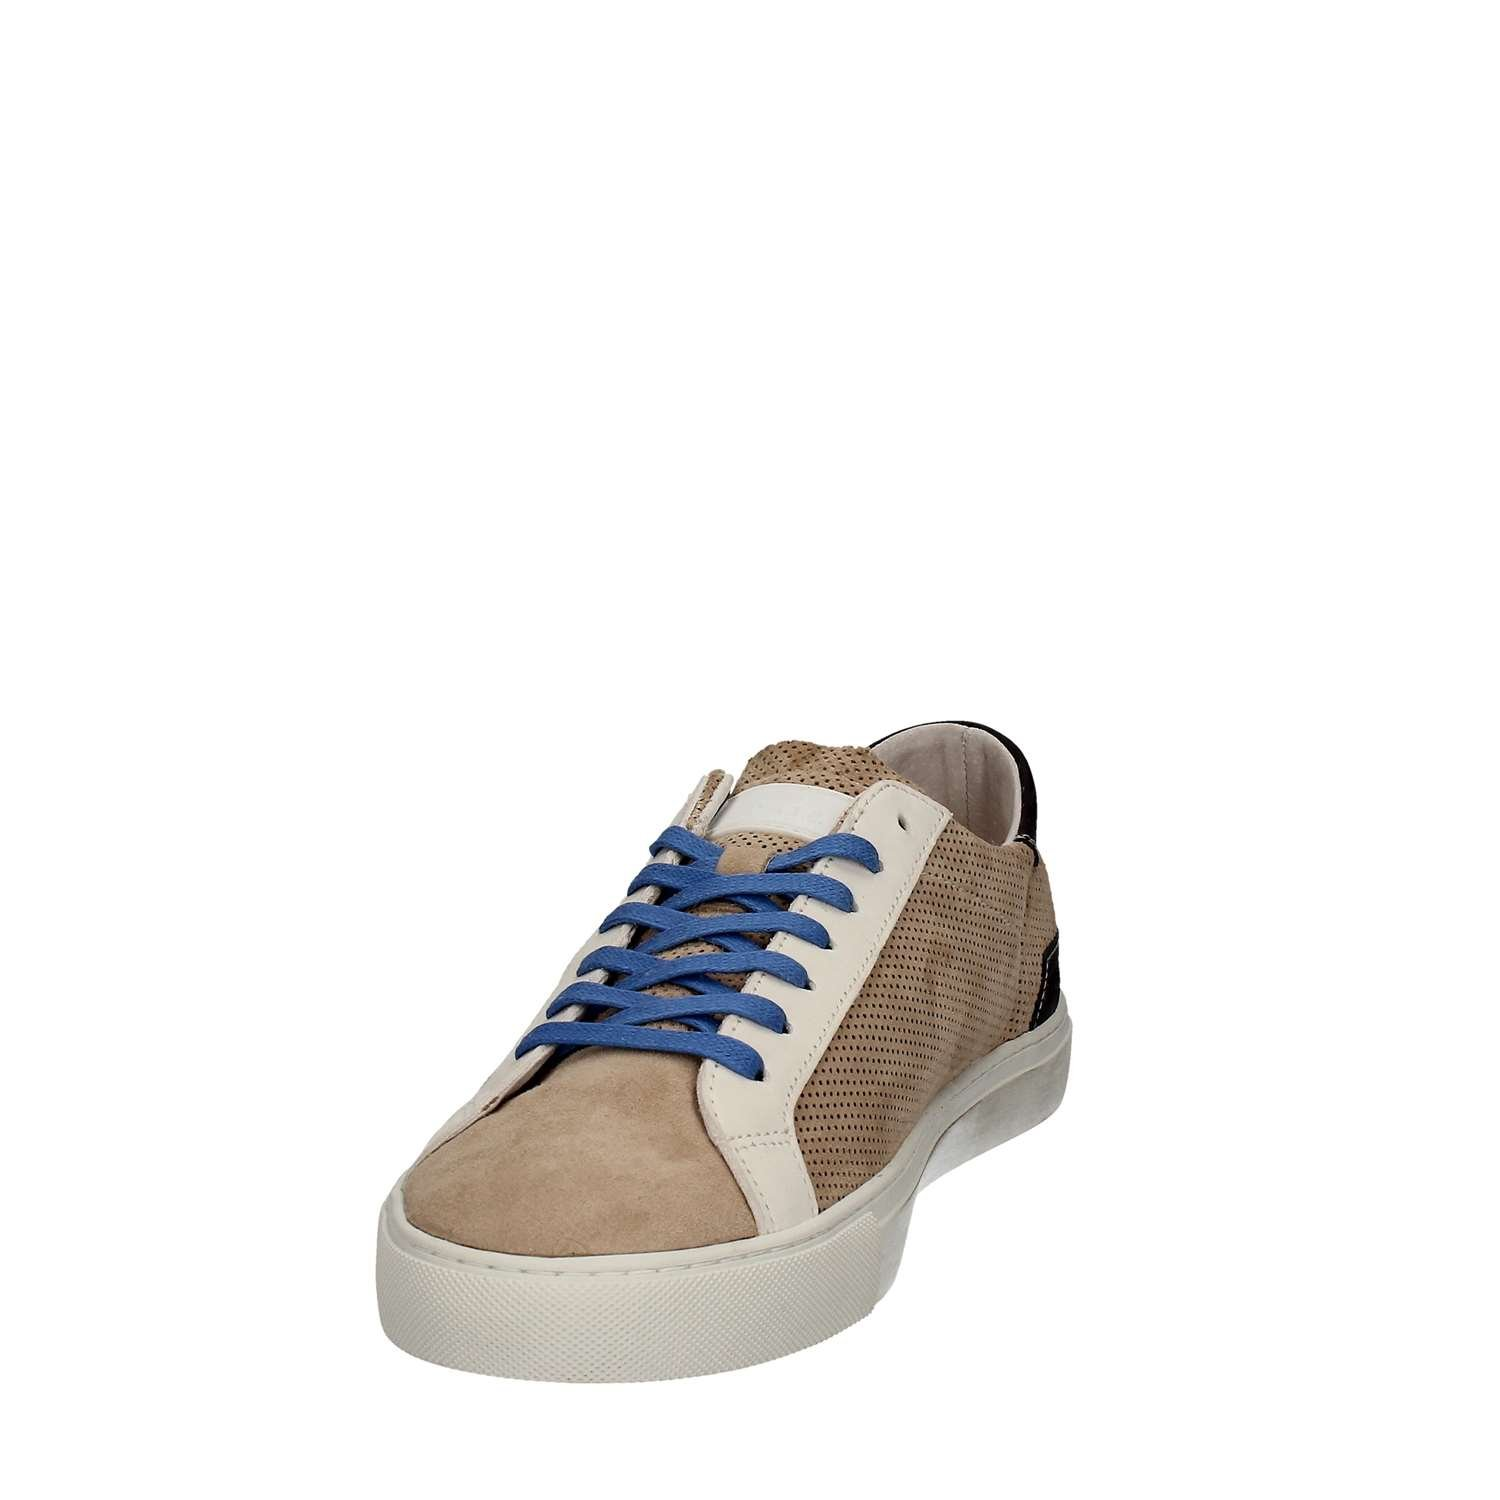 D.a.t.e. Sneakers Newman Perforated Sand M8a 2MJ0fD